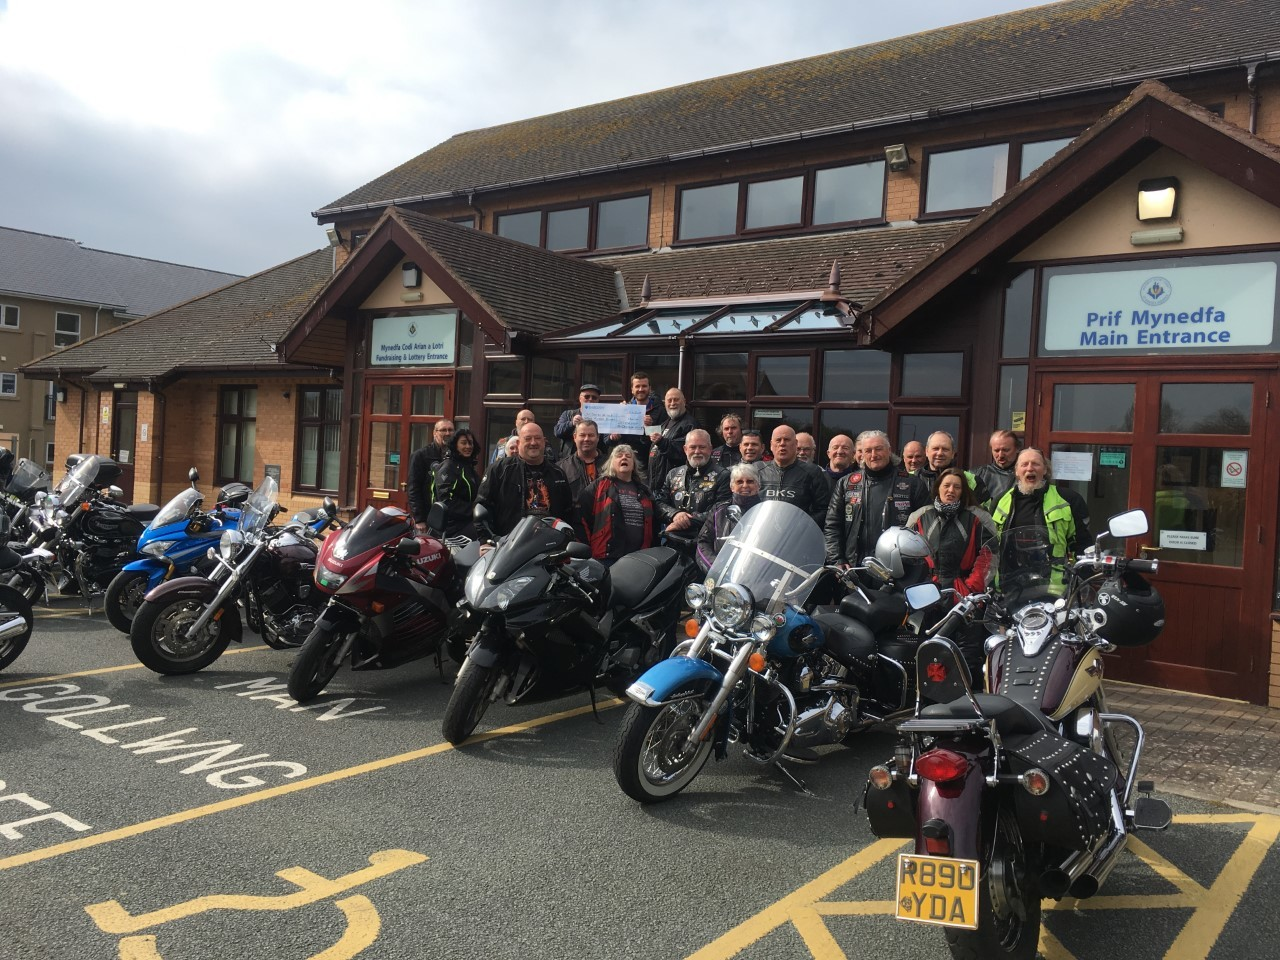 The Whistlestop Motorcycle Club have enjoyed a busy year of fundraising for charity